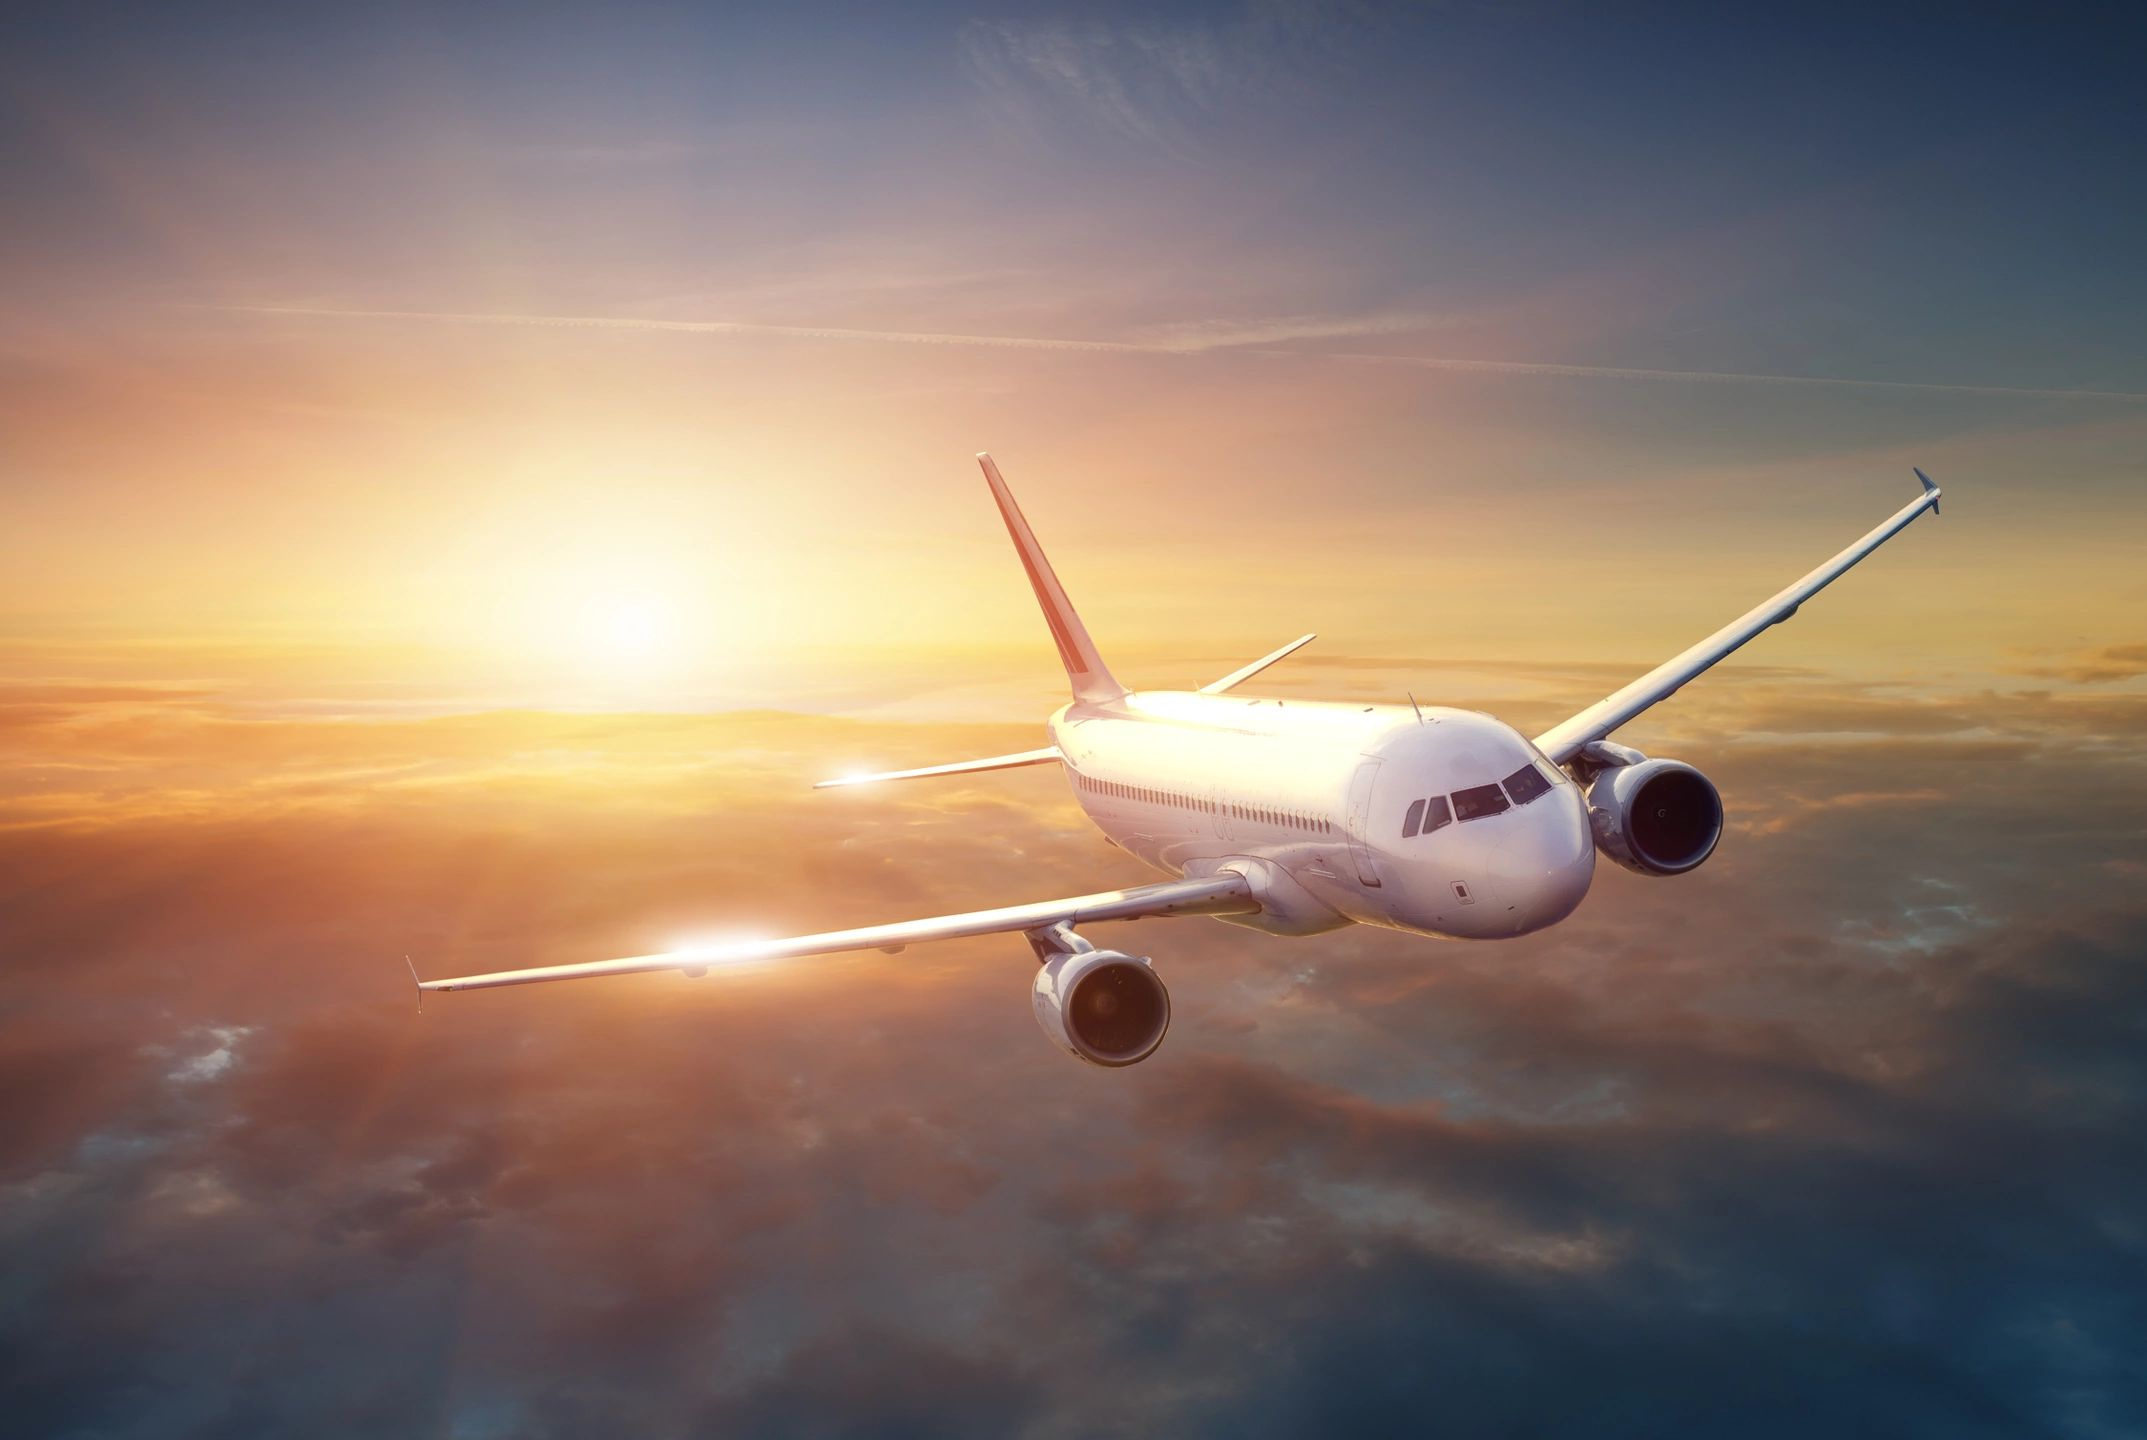 TIPS FOR FLYING COMMERCIAL